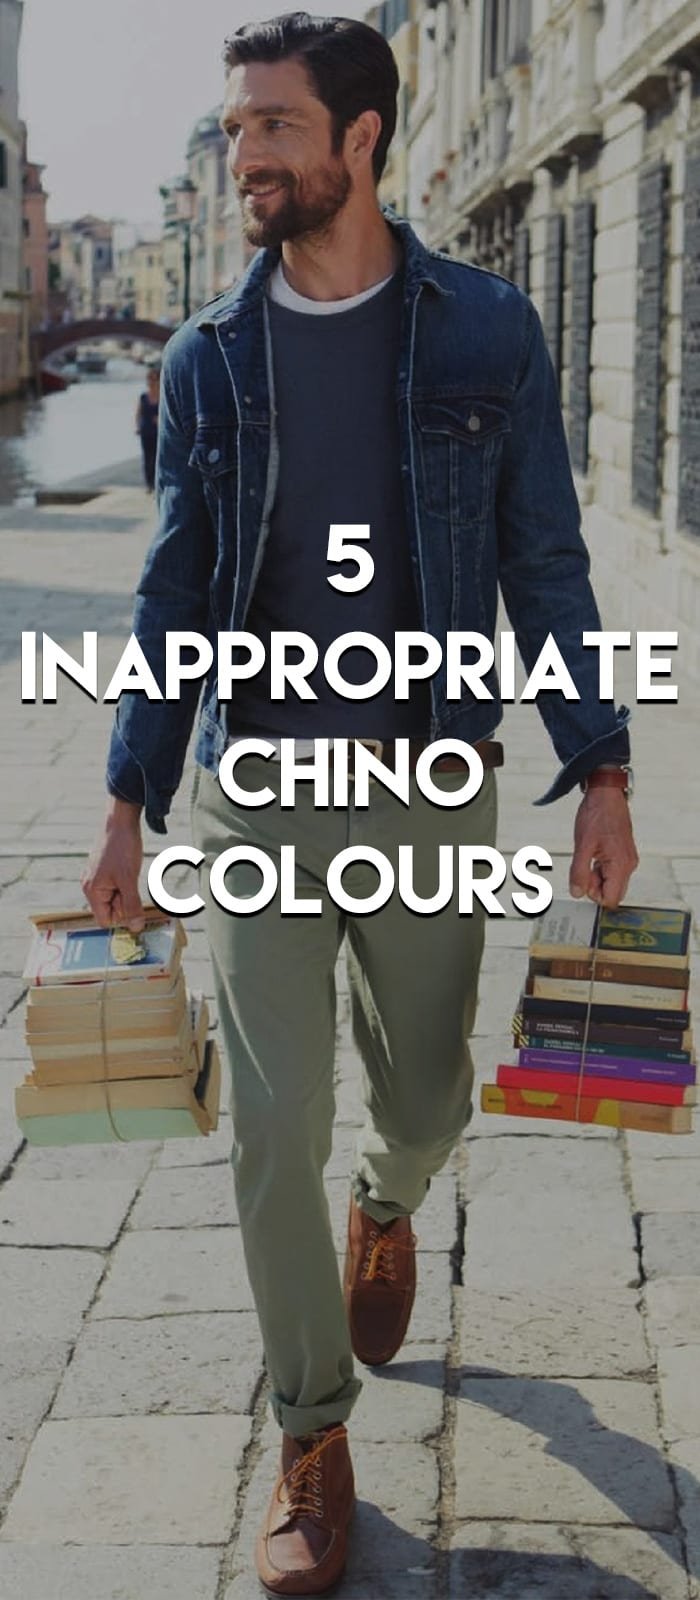 Inappropriate Chino Colours